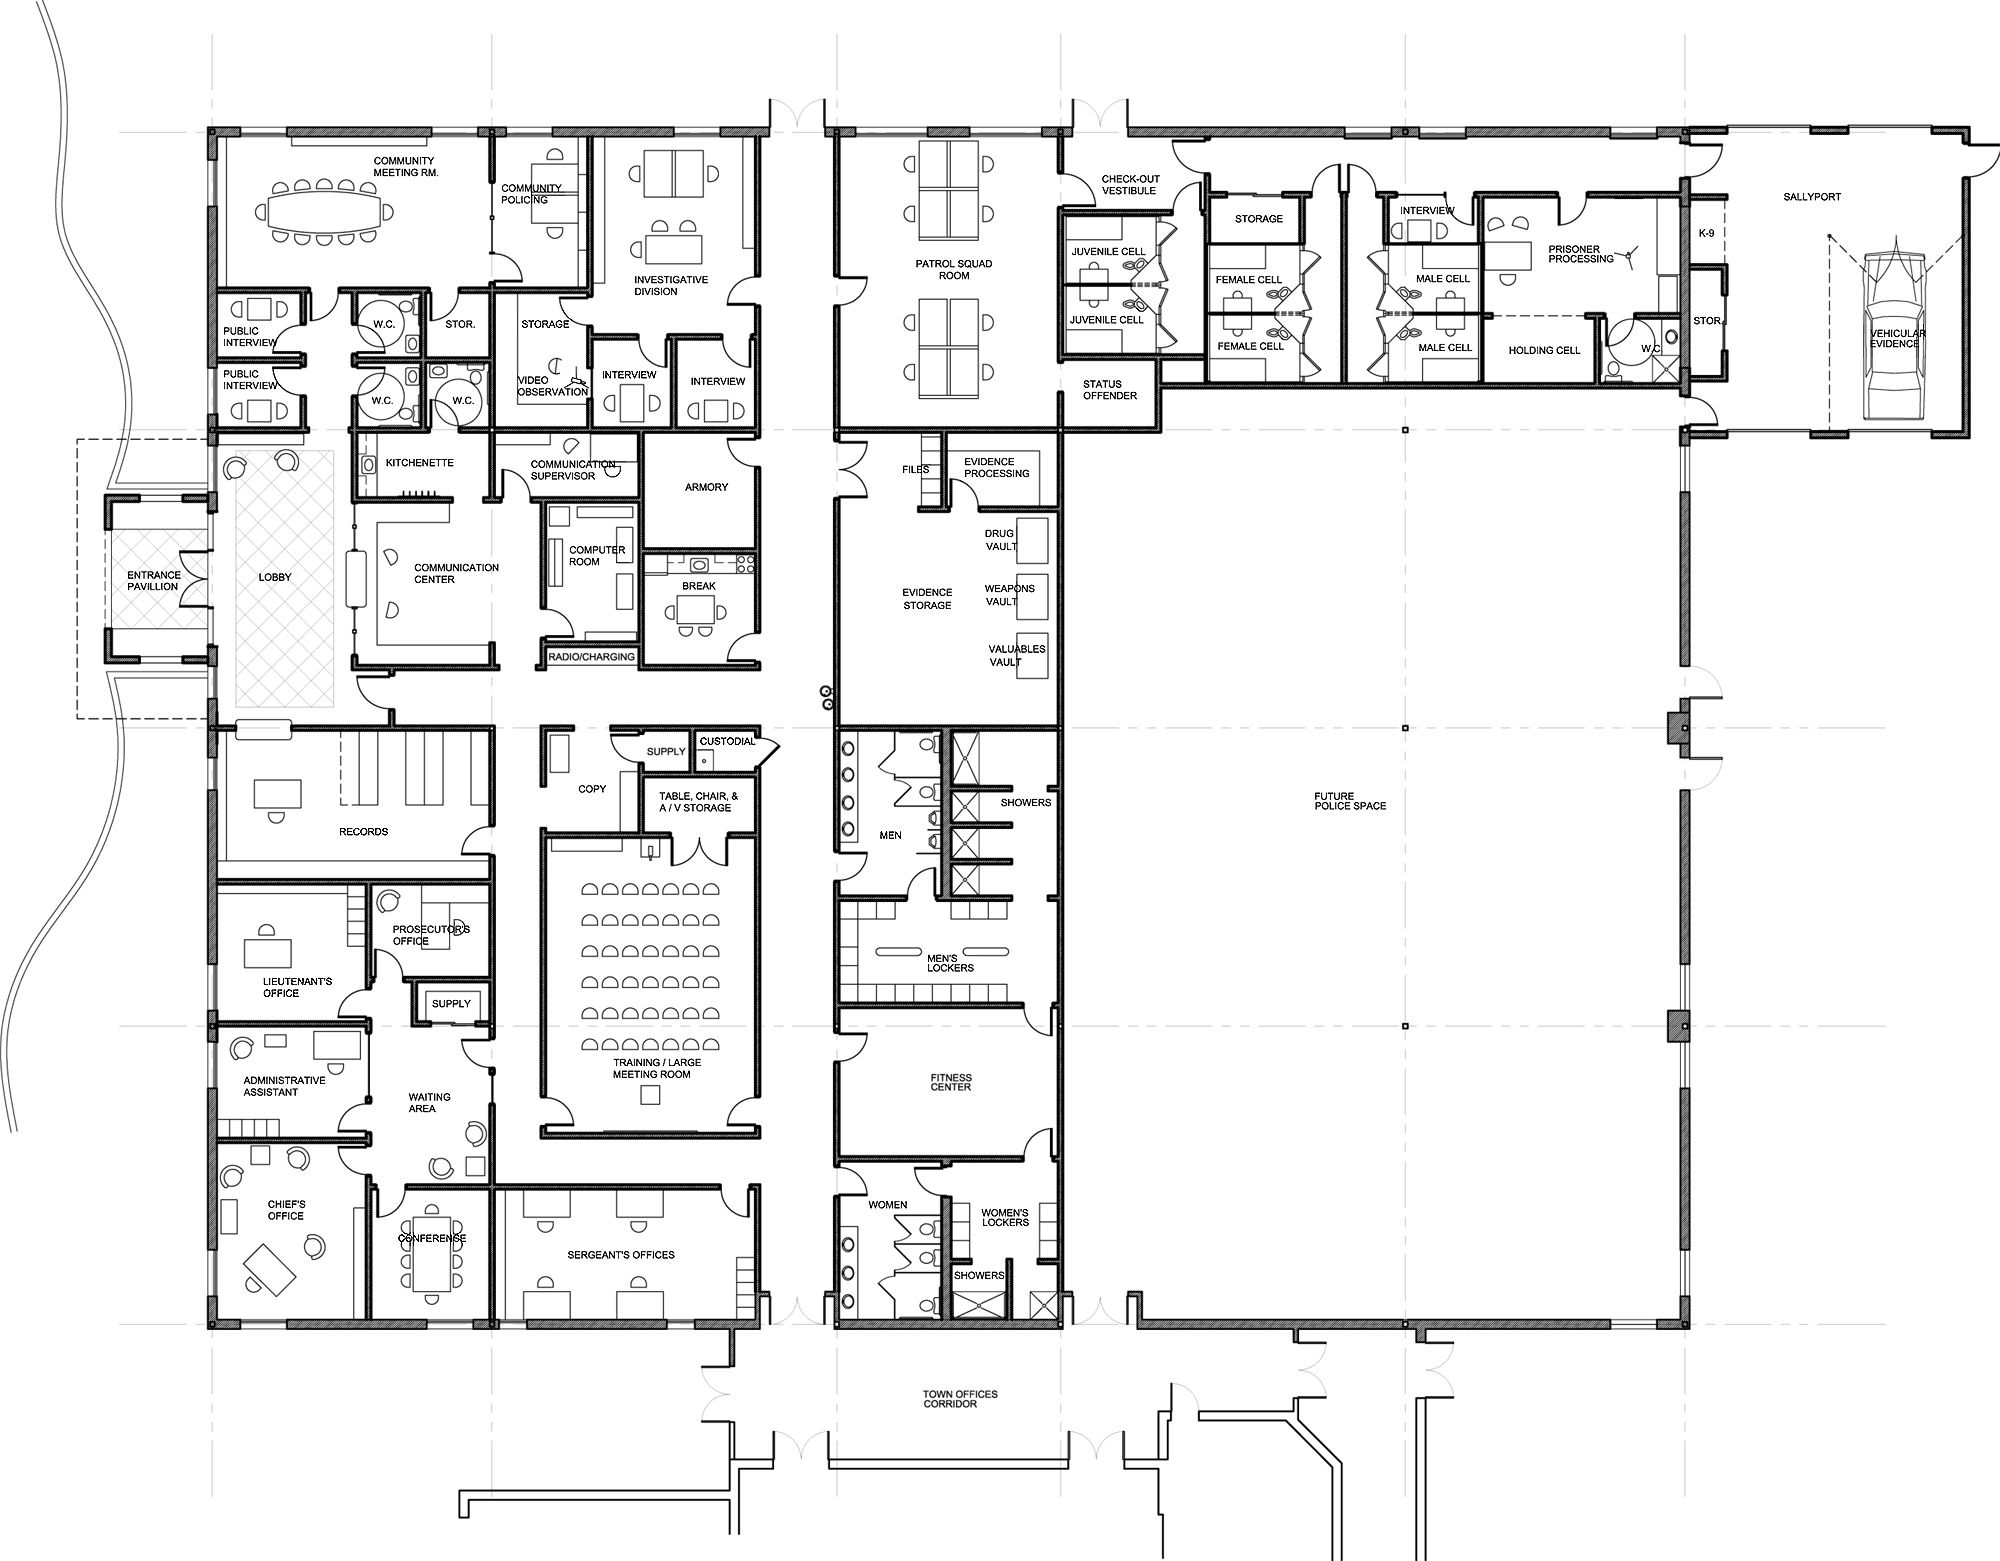 Astonishing floor plans blueprints on floor with home for New building design plan